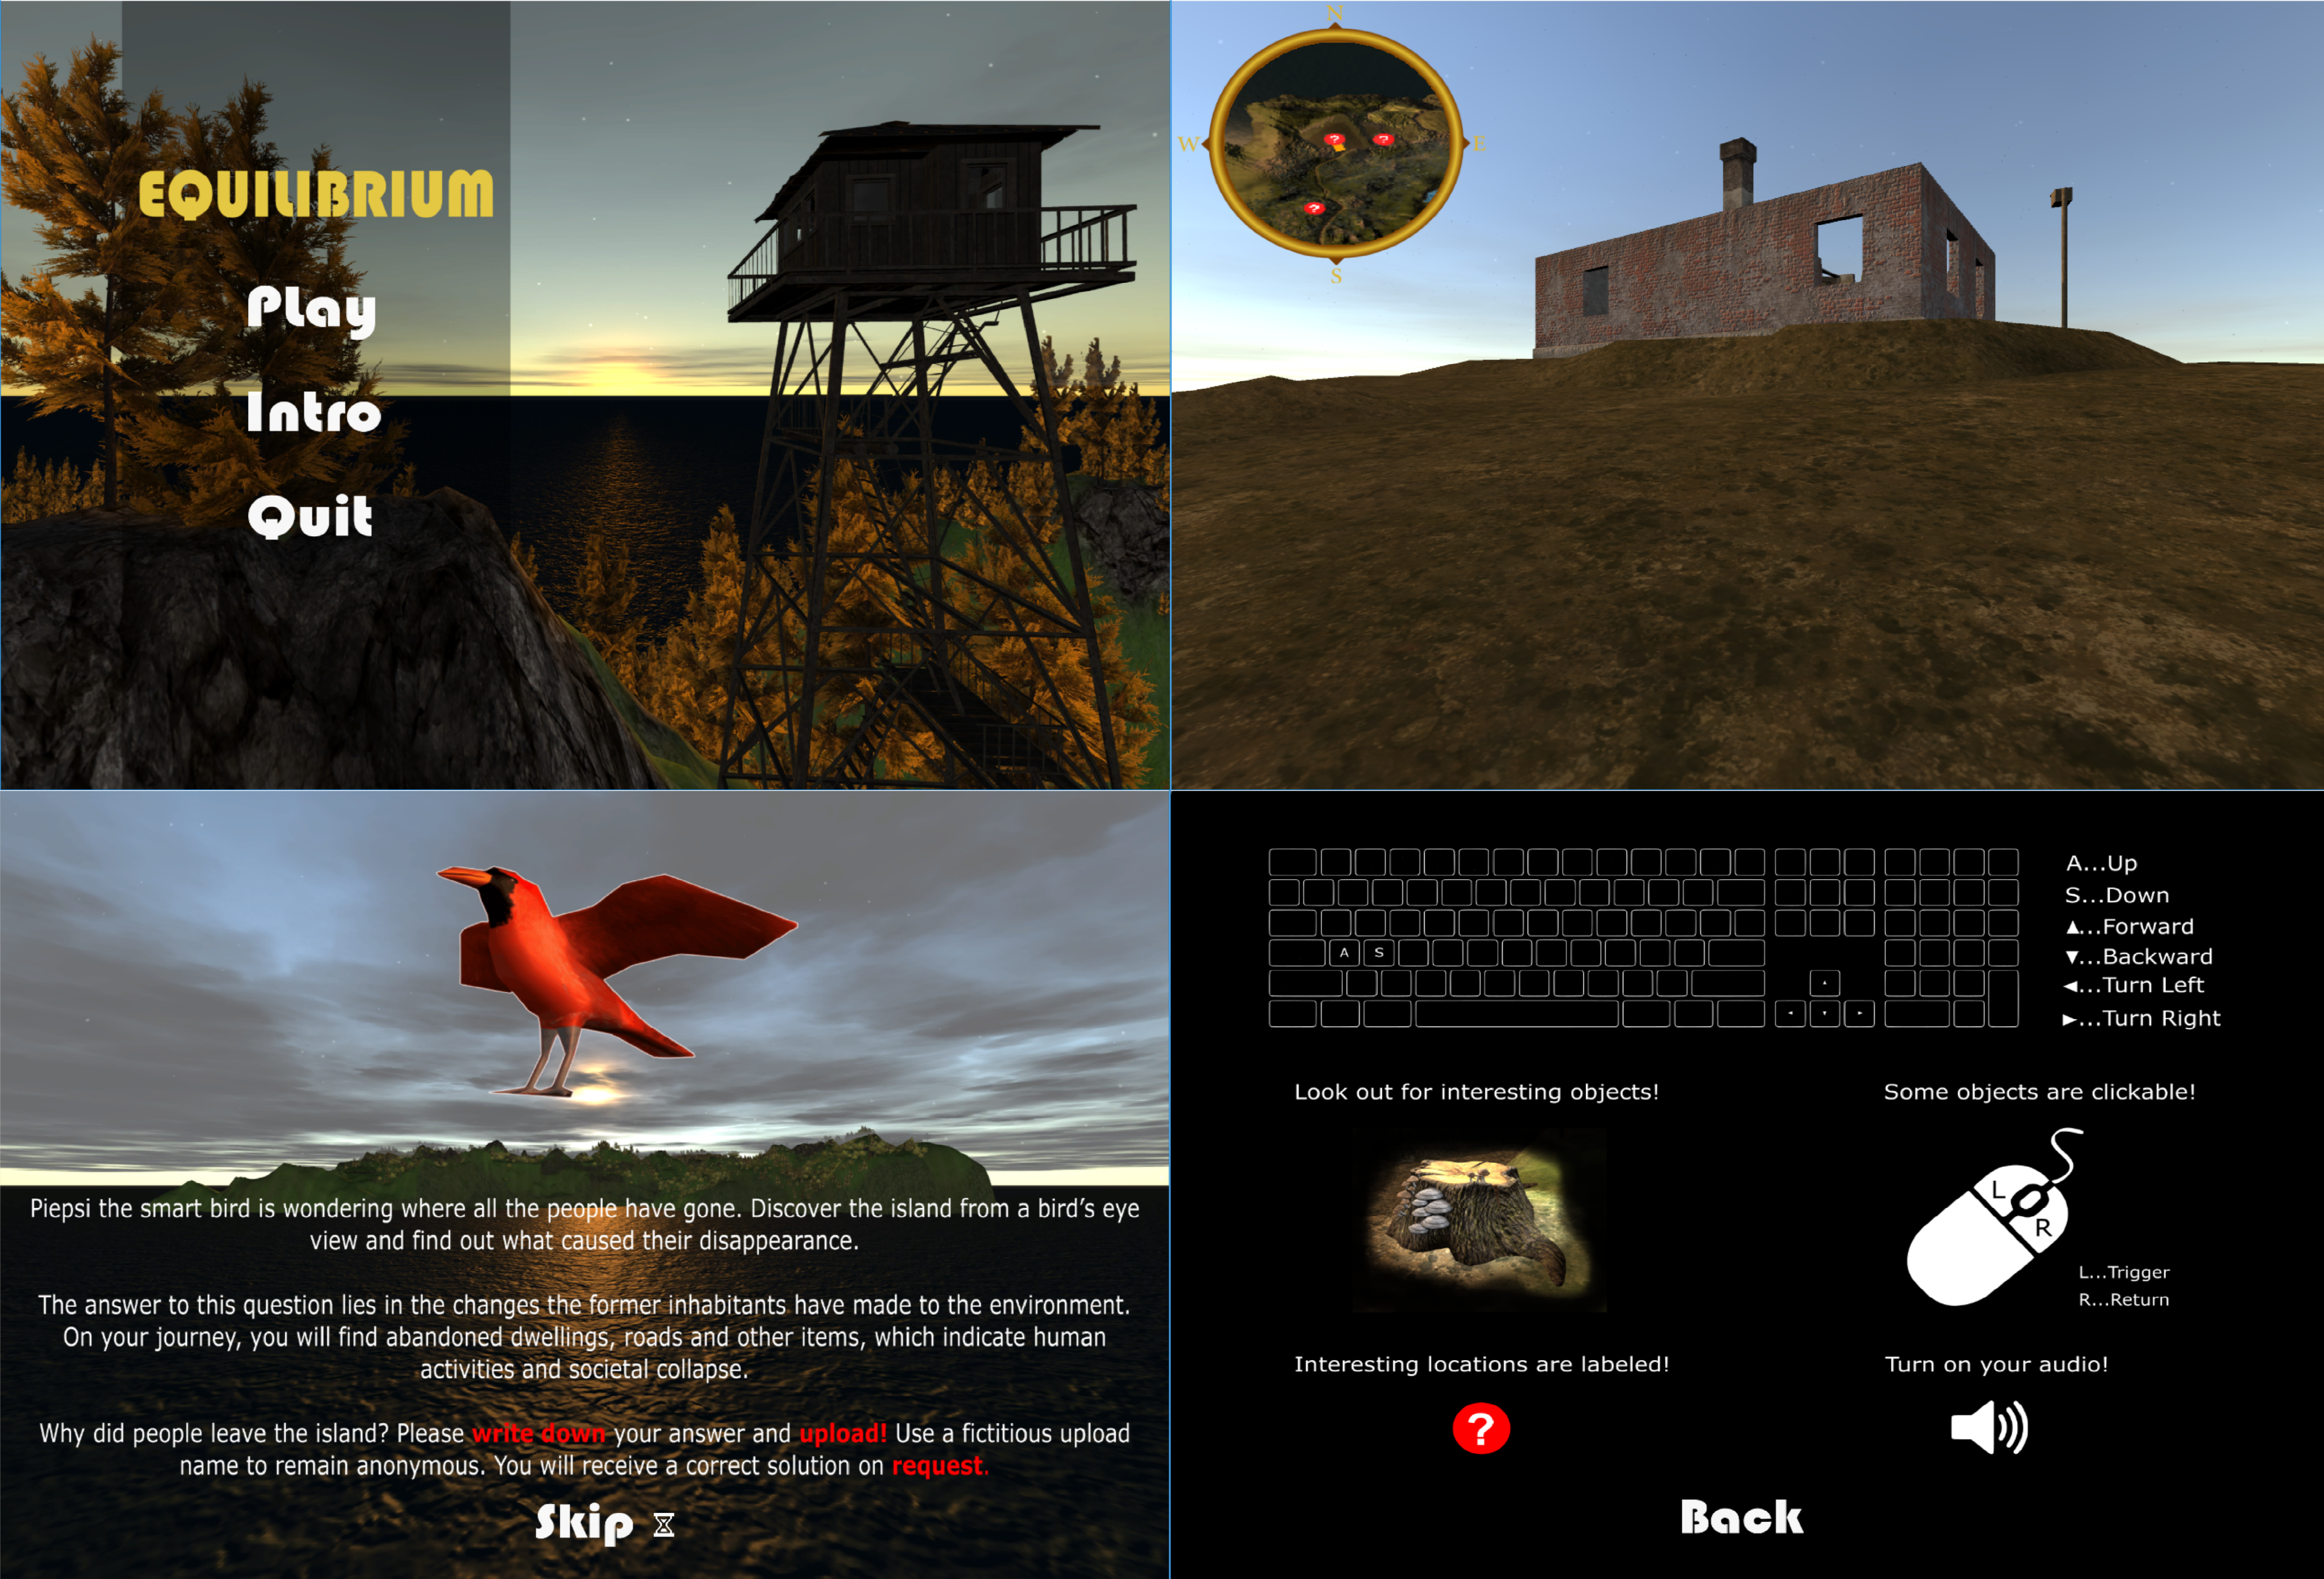 Purpose-Game EQUILIBRIUM openly published in SDR